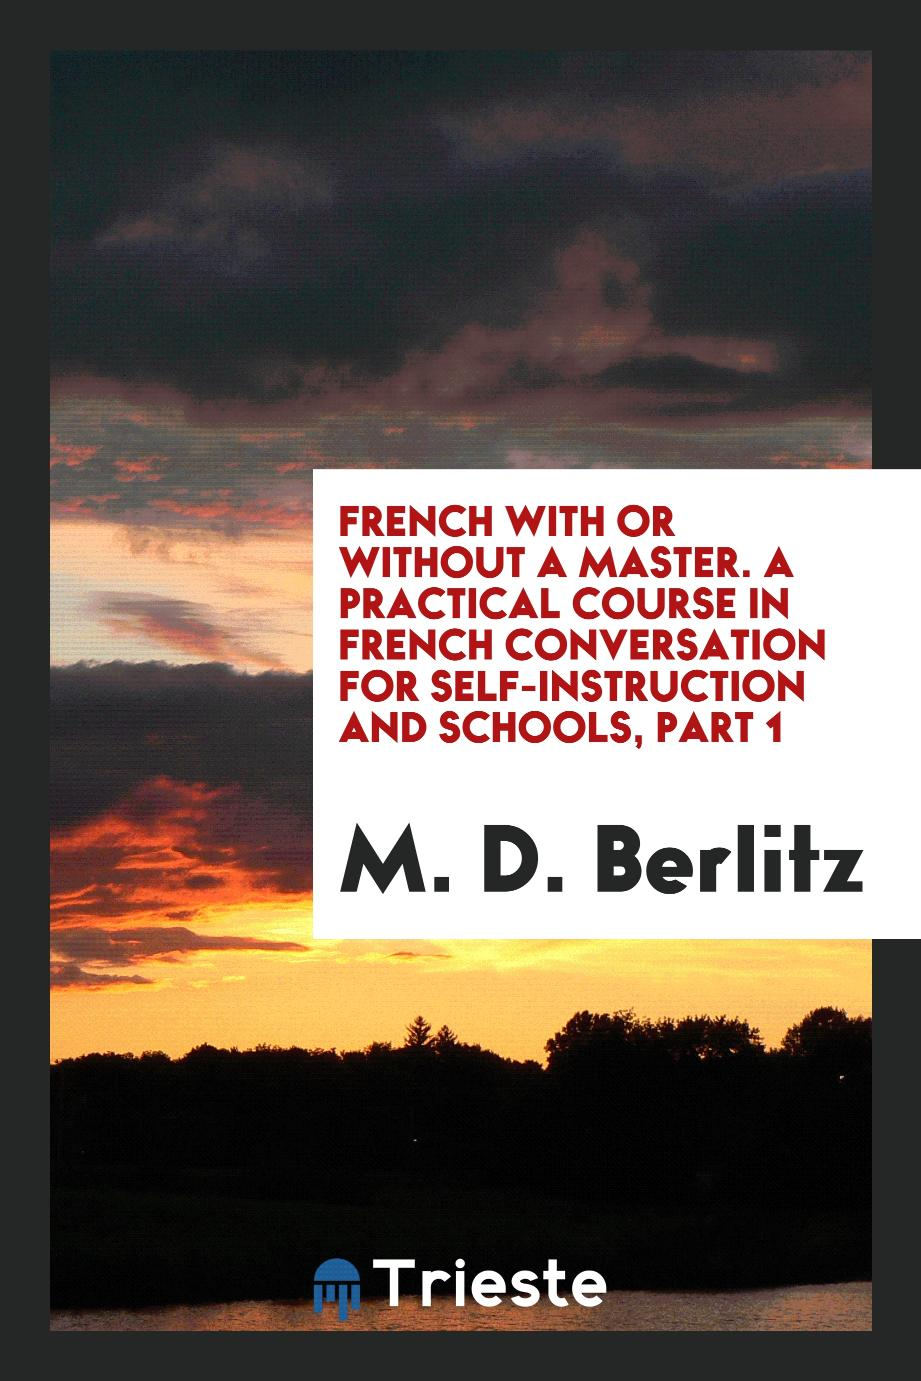 French with or Without a Master. A Practical Course in French Conversation for Self-Instruction and Schools, Part 1